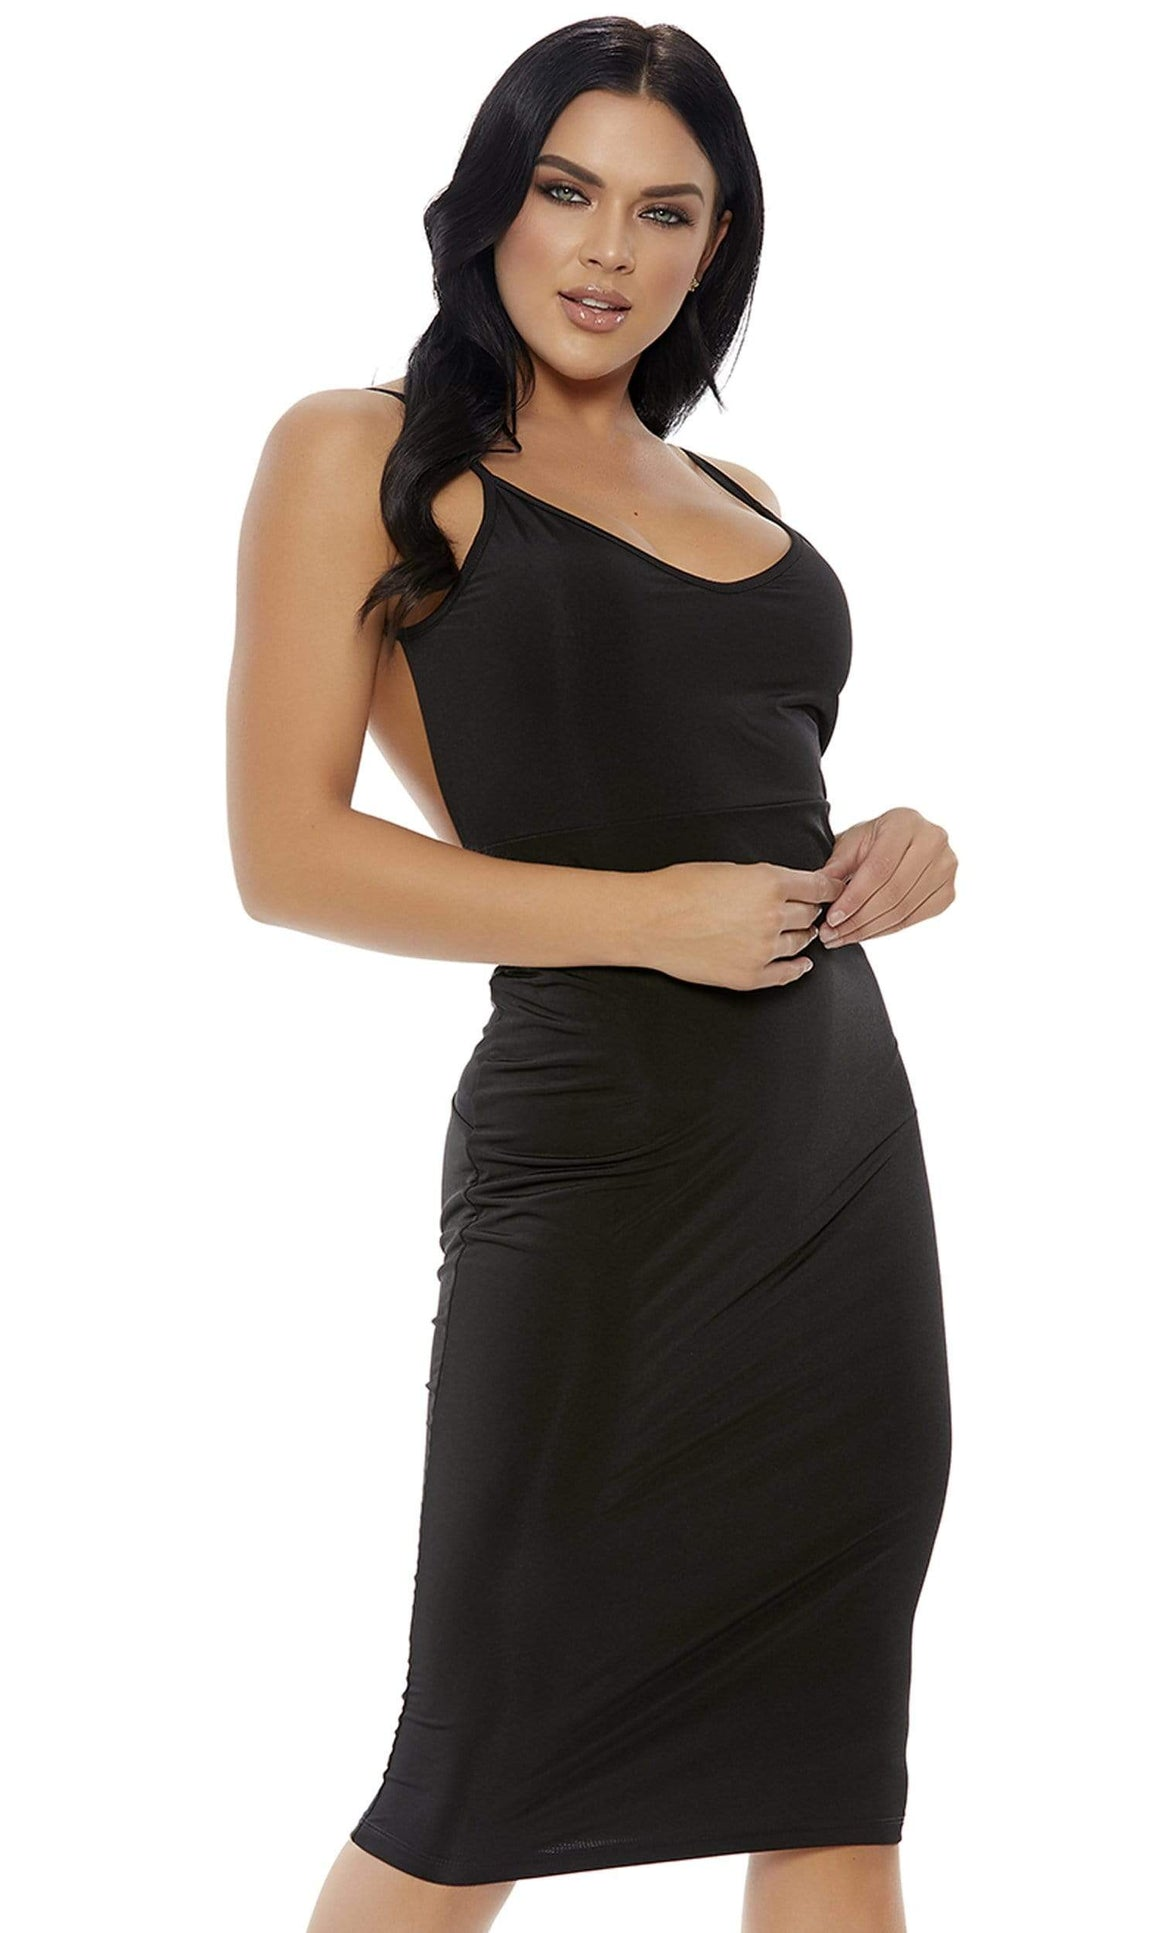 Forplay Small / Black Black Knot Into It Midi Dress SHC-886800-S-FP Apparel & Accessories > Clothing > Dresses